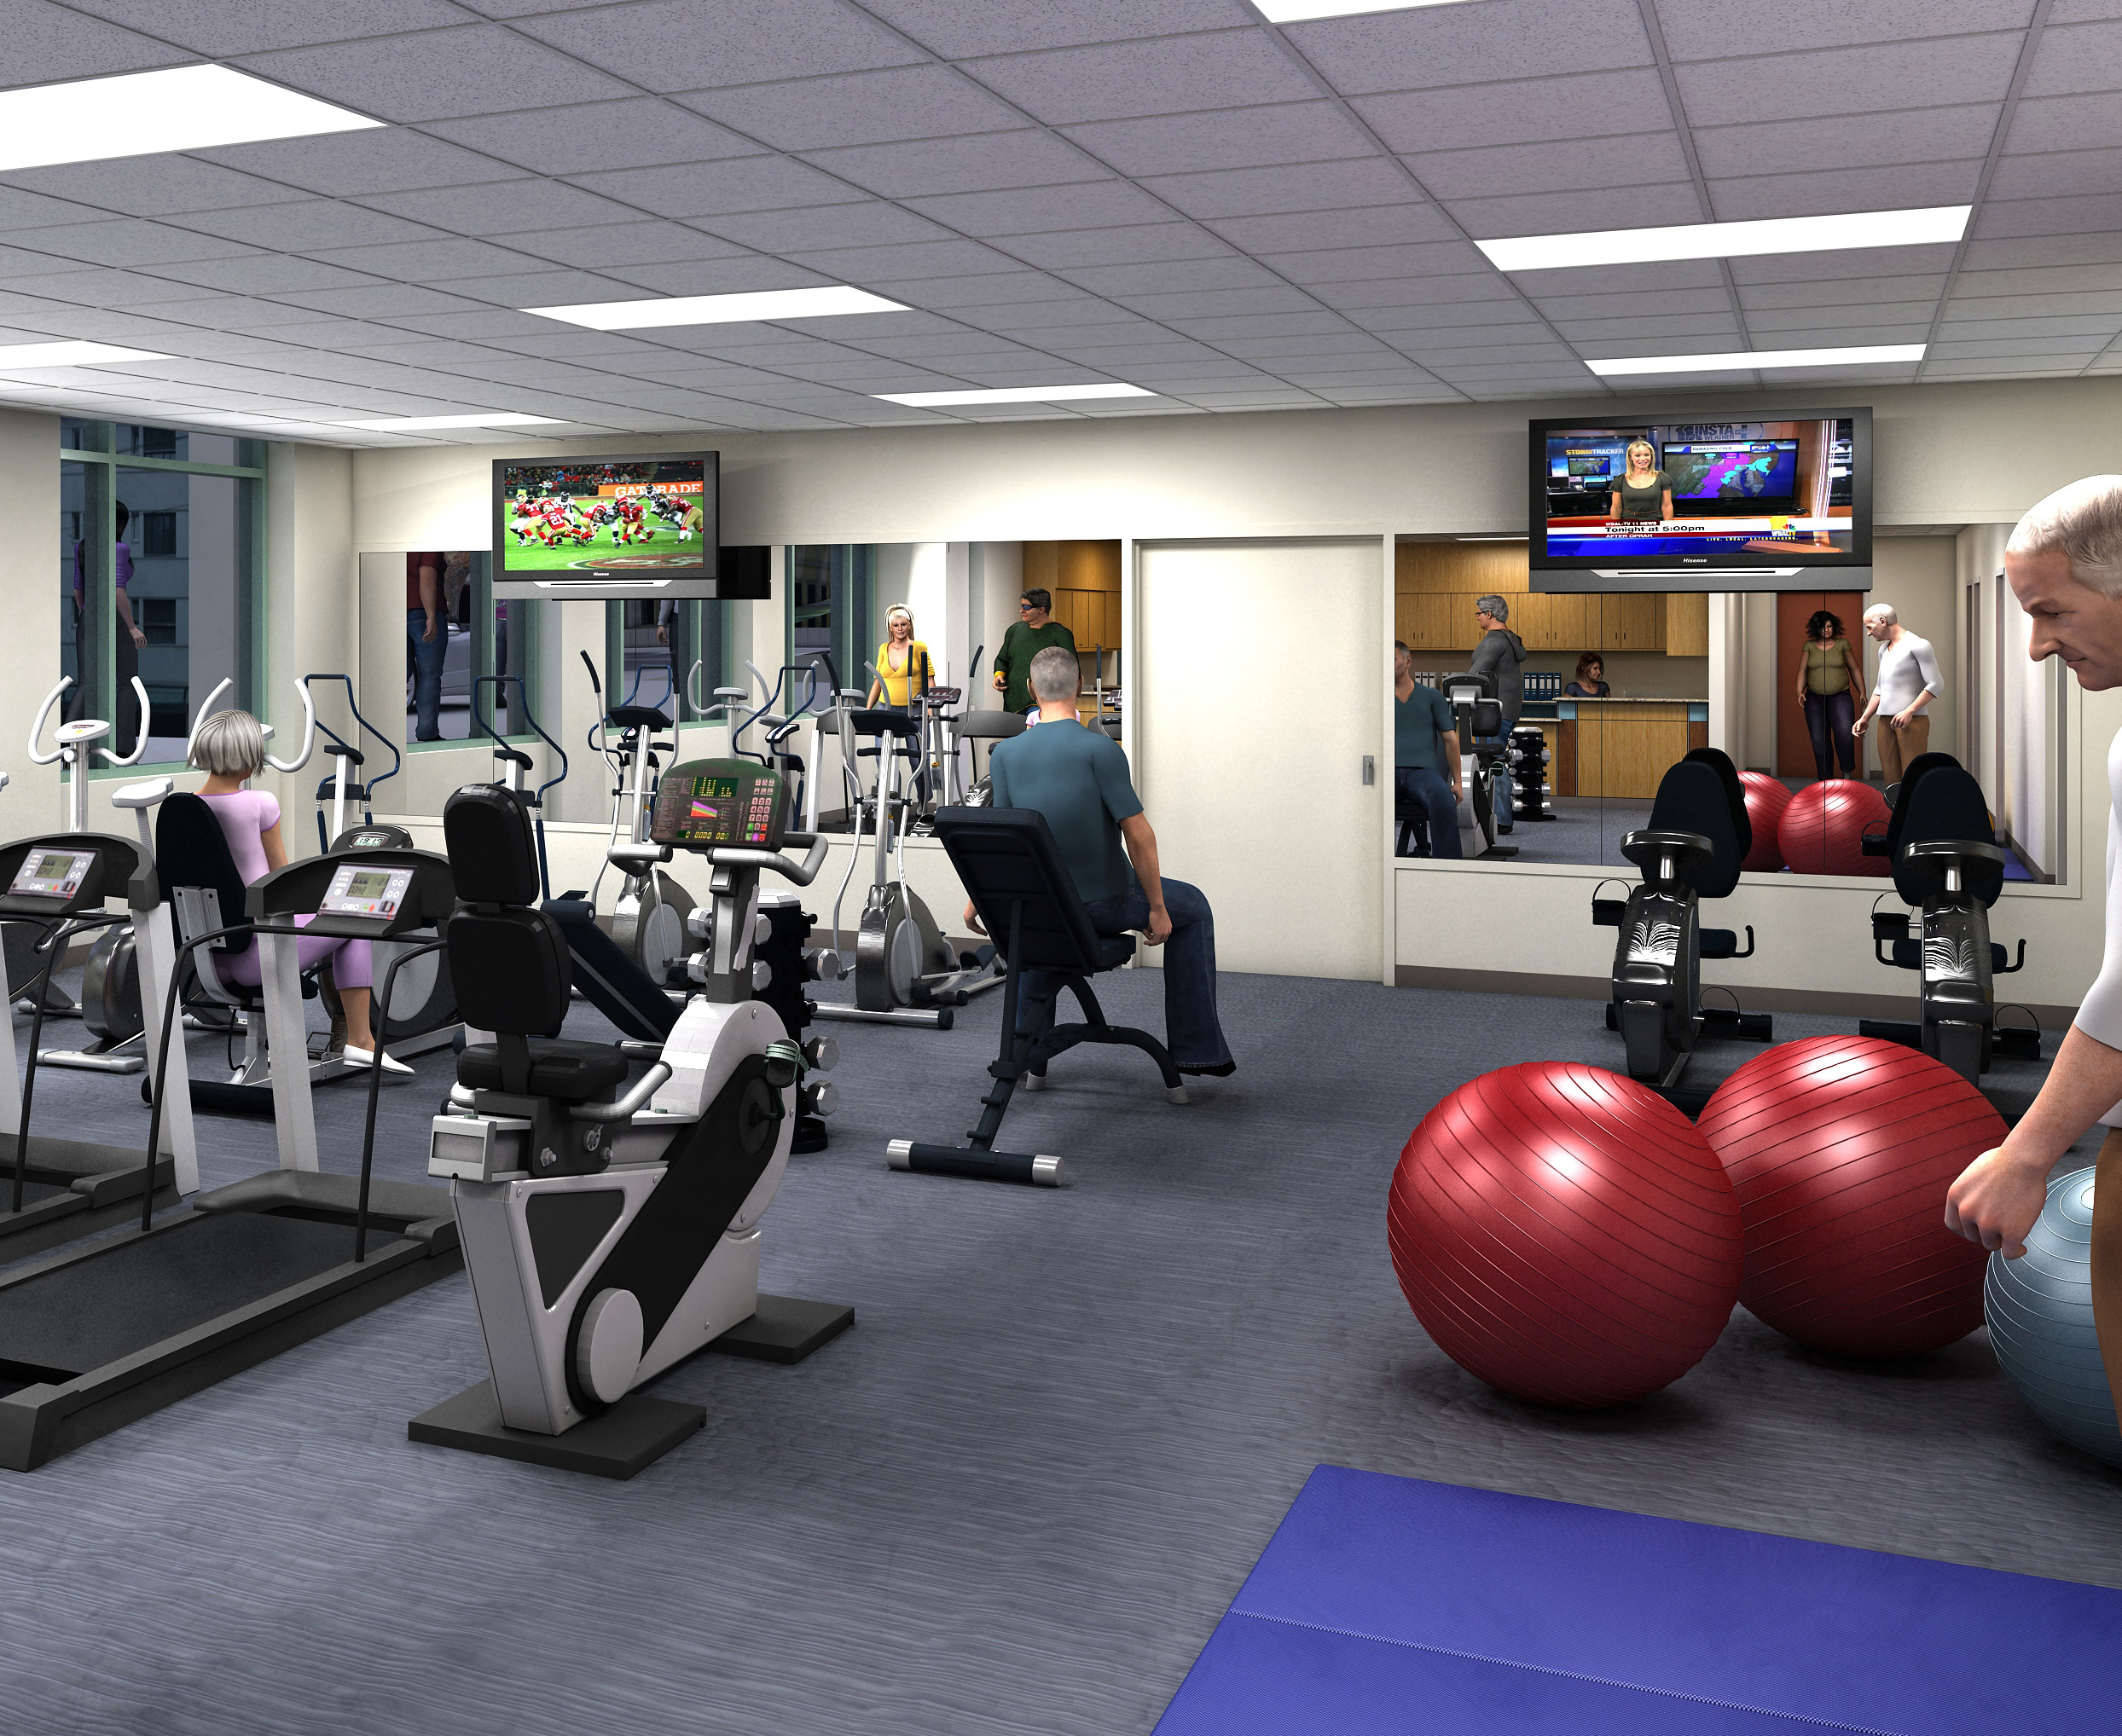 Rehabilitation Facility Floor Plans also Skilled Nursing Facility Floor Plans further Assisted Living Suite 1 together with Valparaiso together with Megazine. on rehabilitation facility floor plans